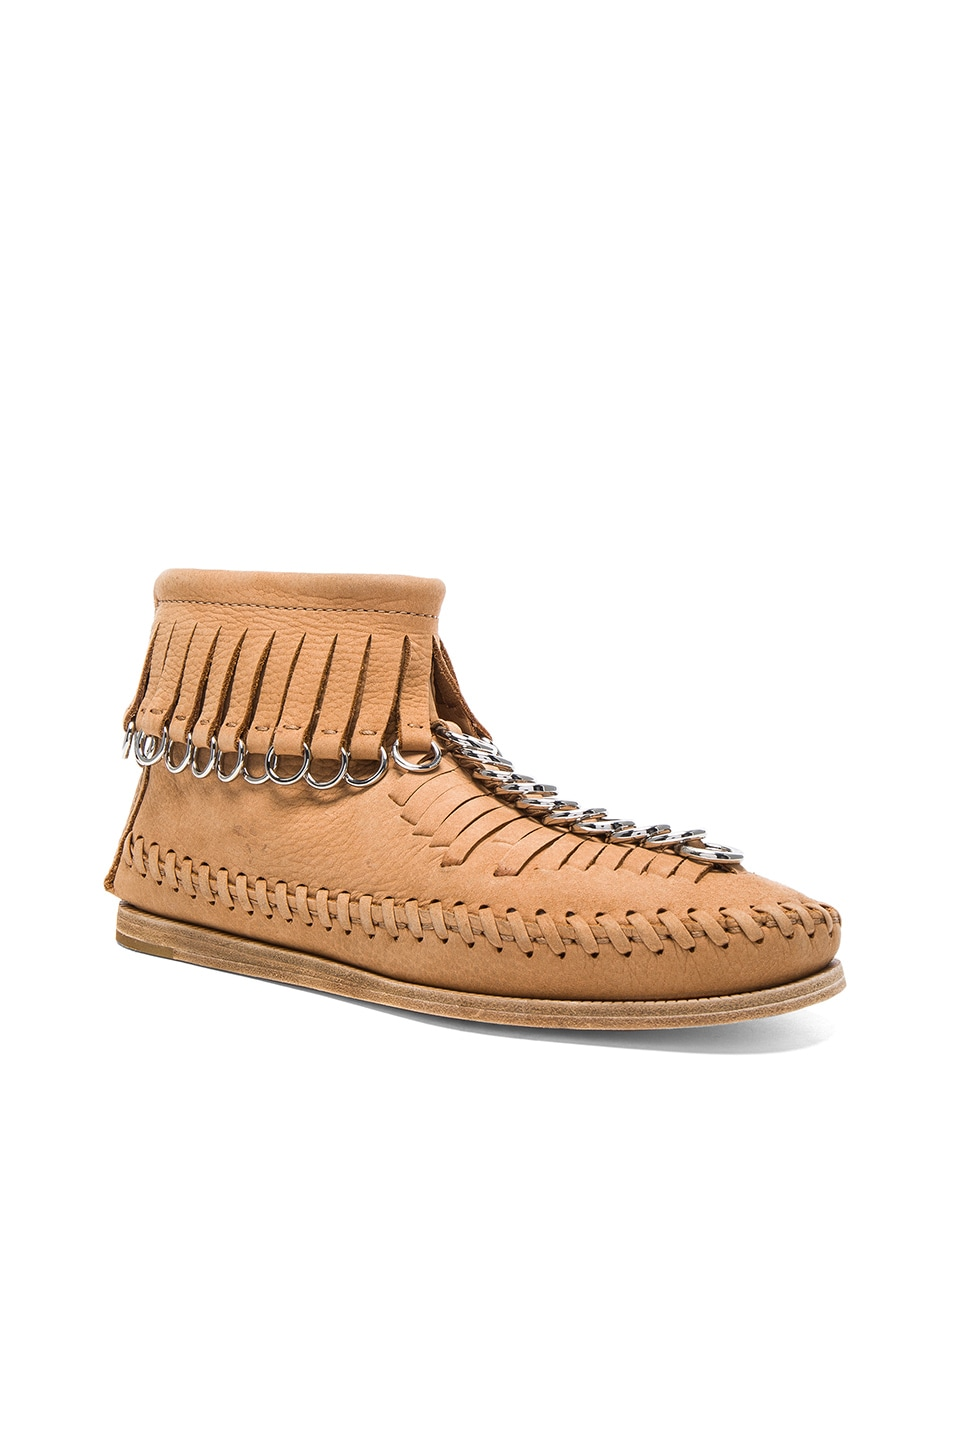 ALEXANDER WANG Leather Montana Booties In Neutrals. in Clay